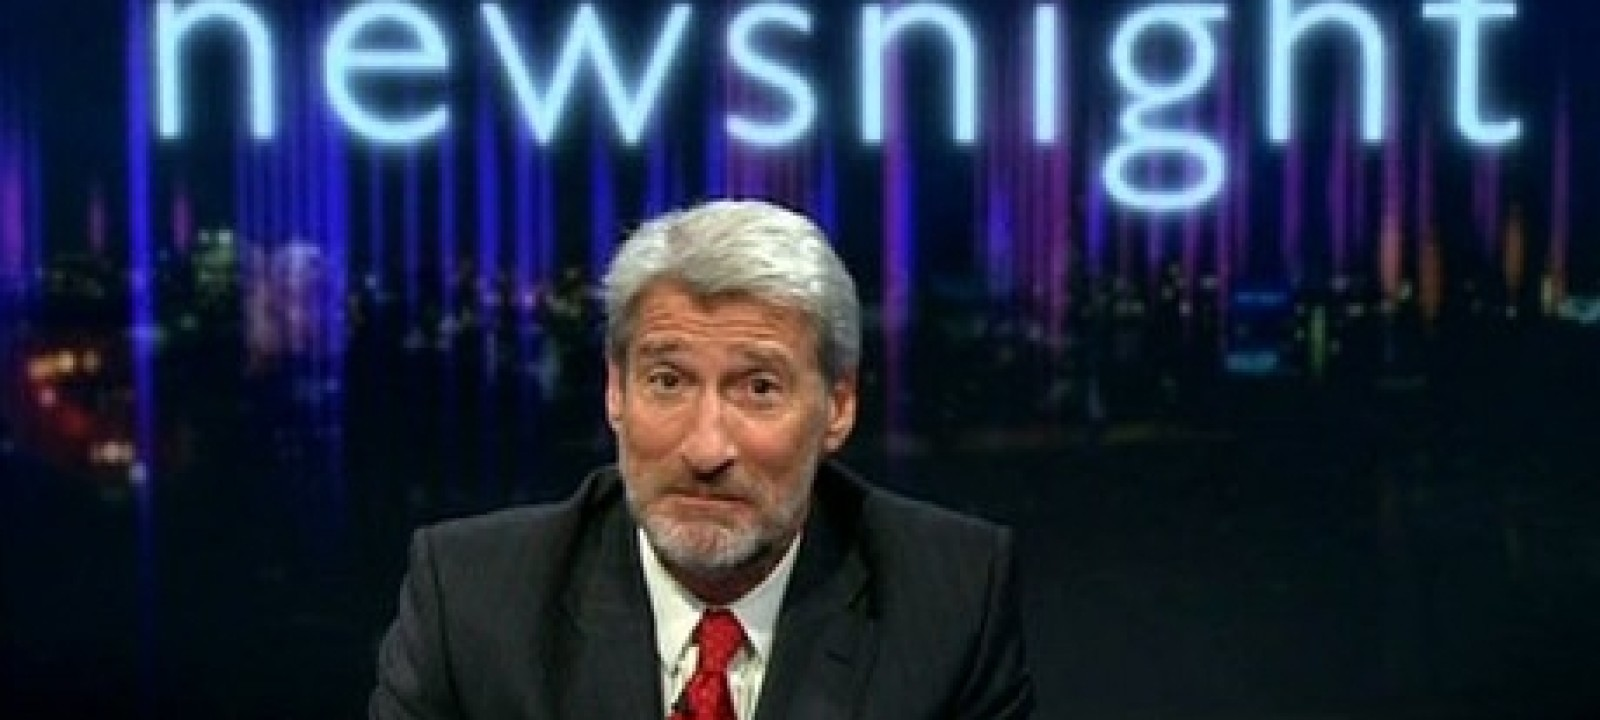 Jeremy Paxman, host of 'Newsnight' (BBC)